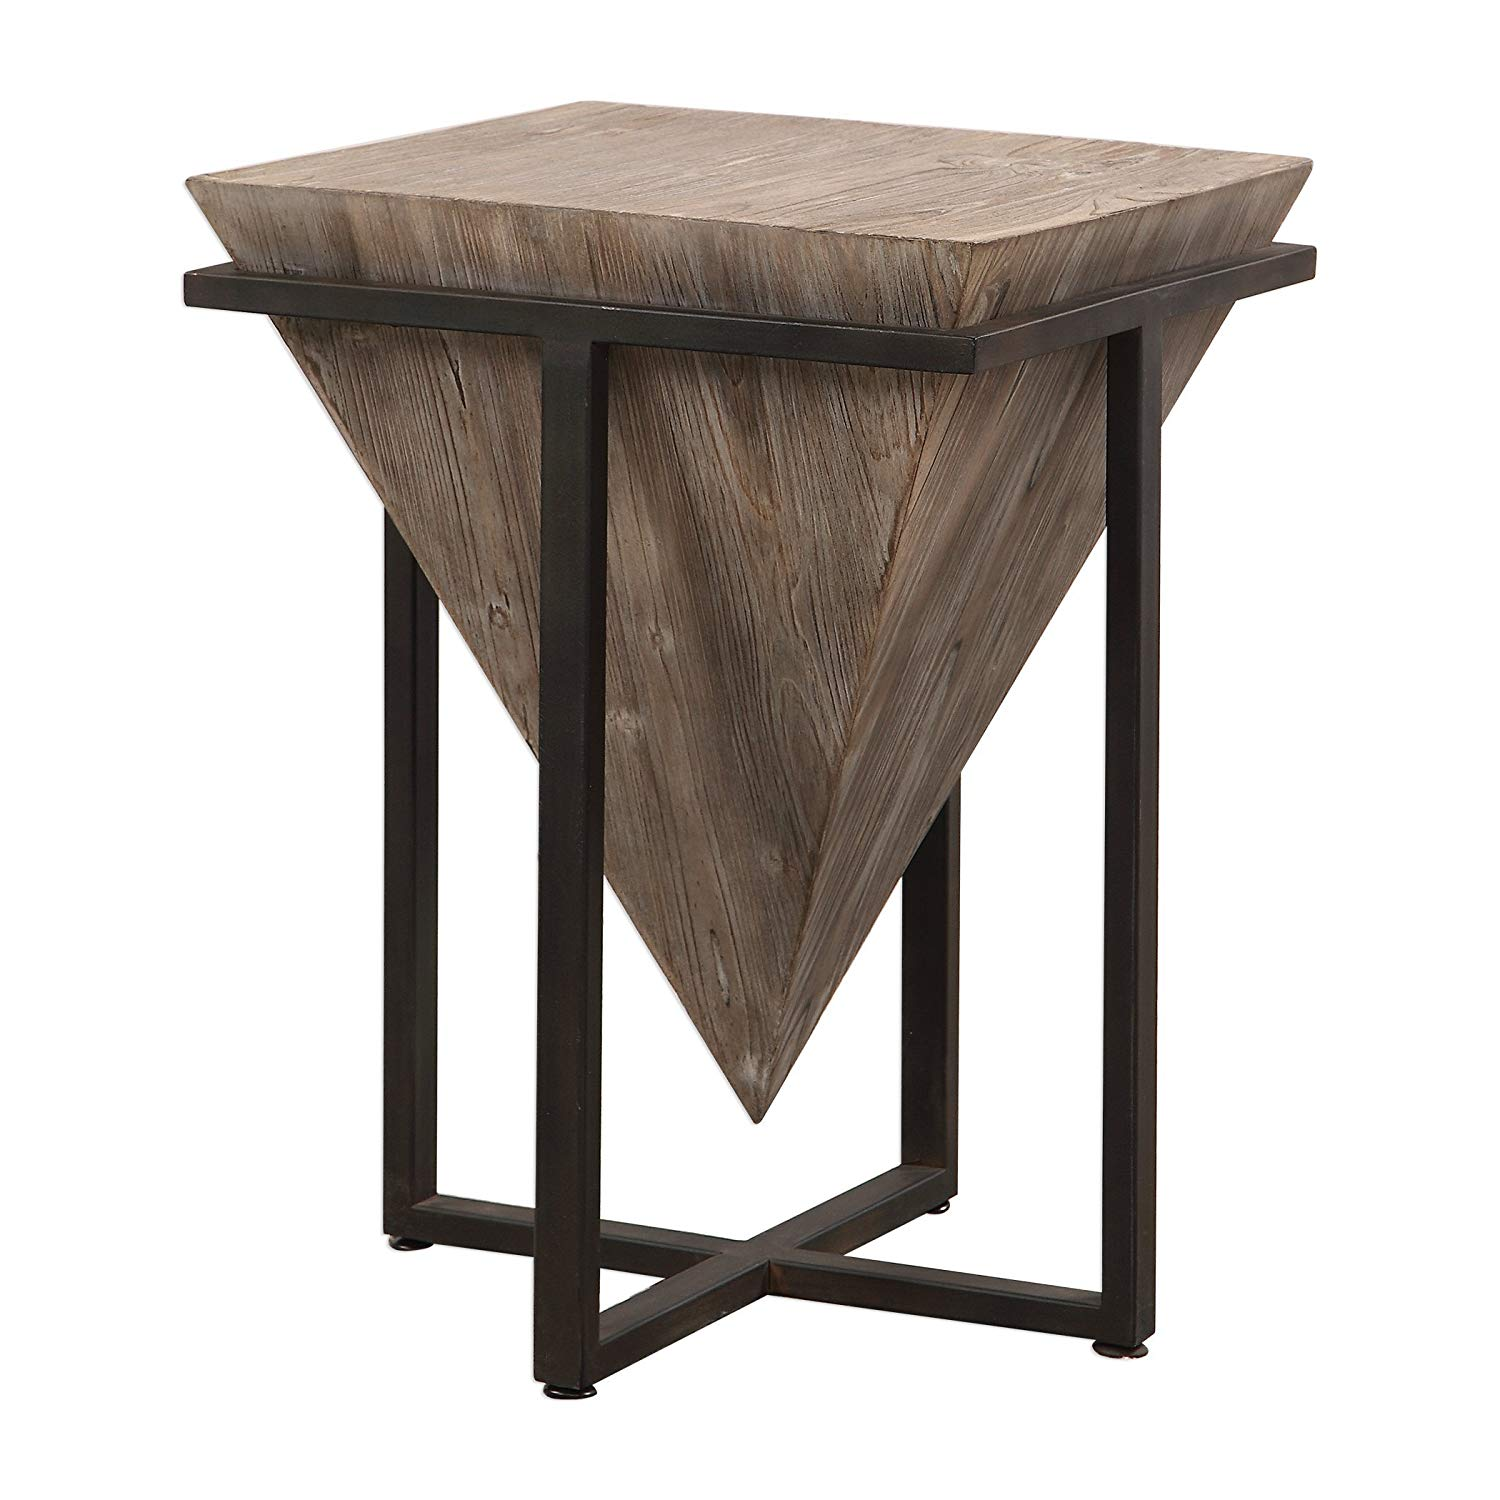 swanky home modern rustic industrial pyramid end accent table geometric iron wood block kitchen dining floor length mirror over the couch goods decor black jcpenney bar stools